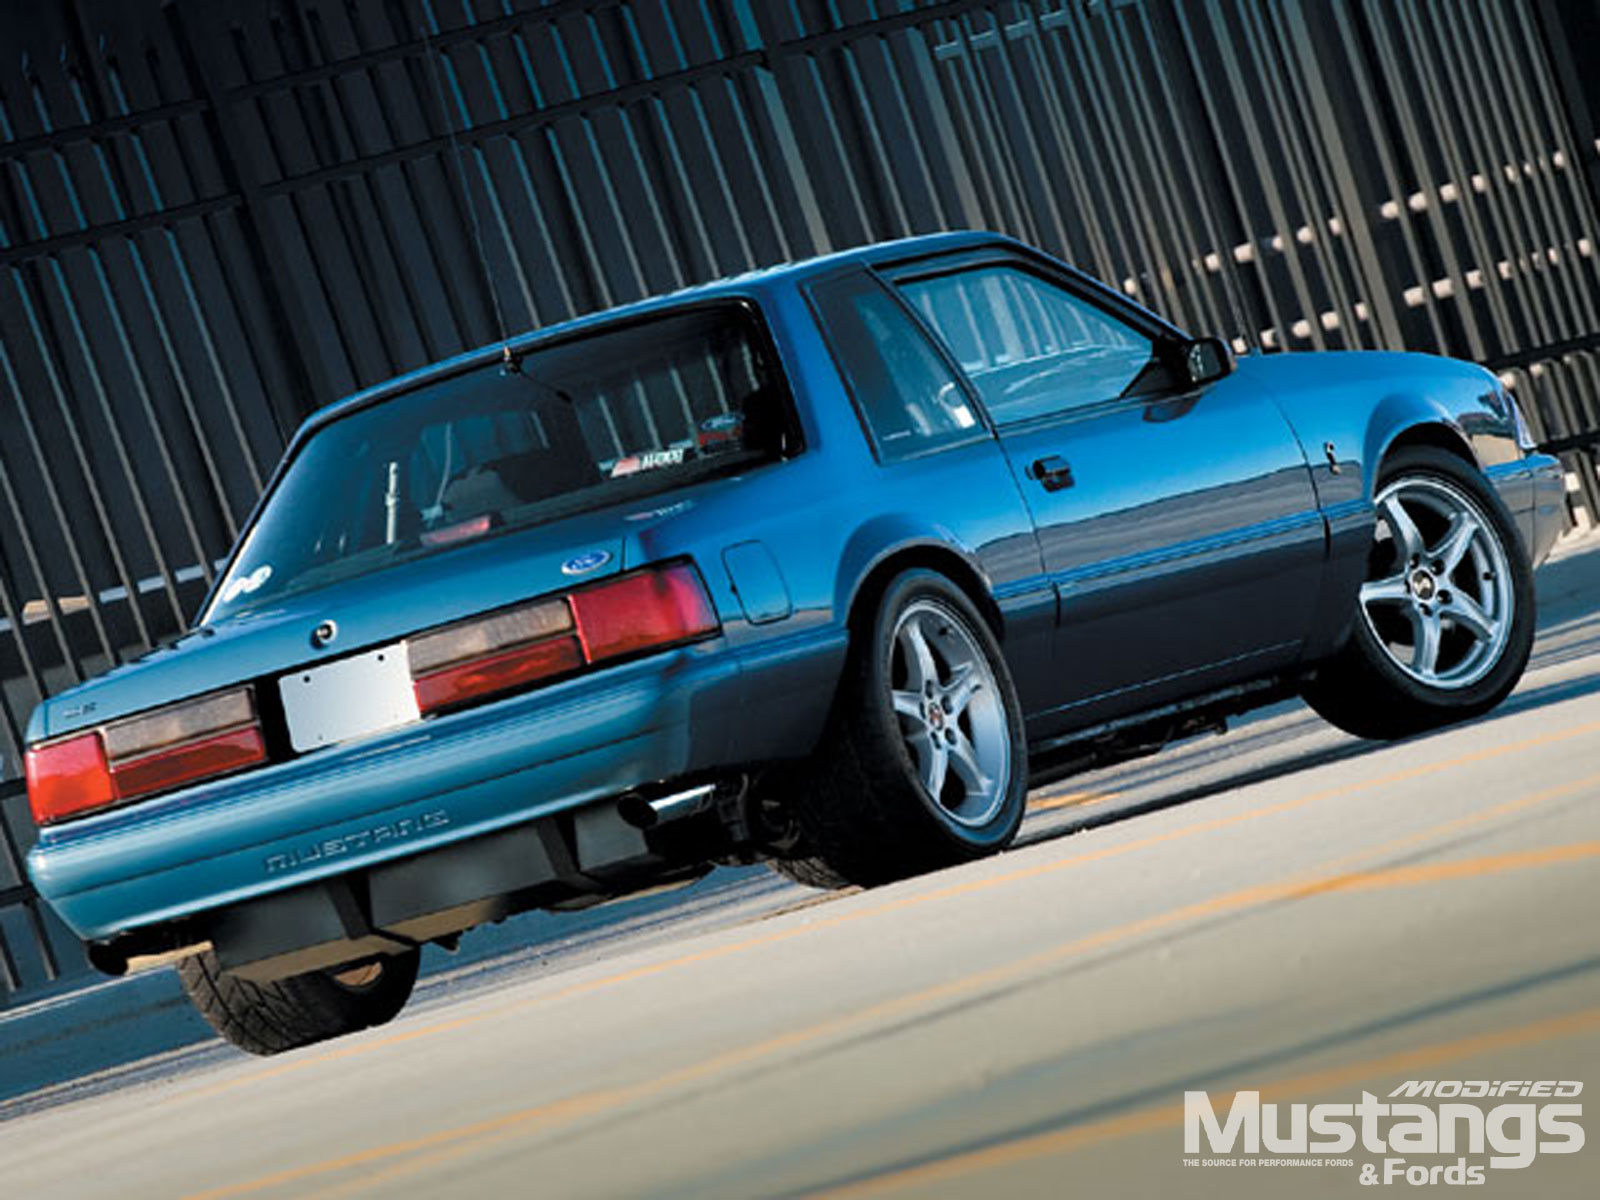 1987 Ford Mustang Lx Backview